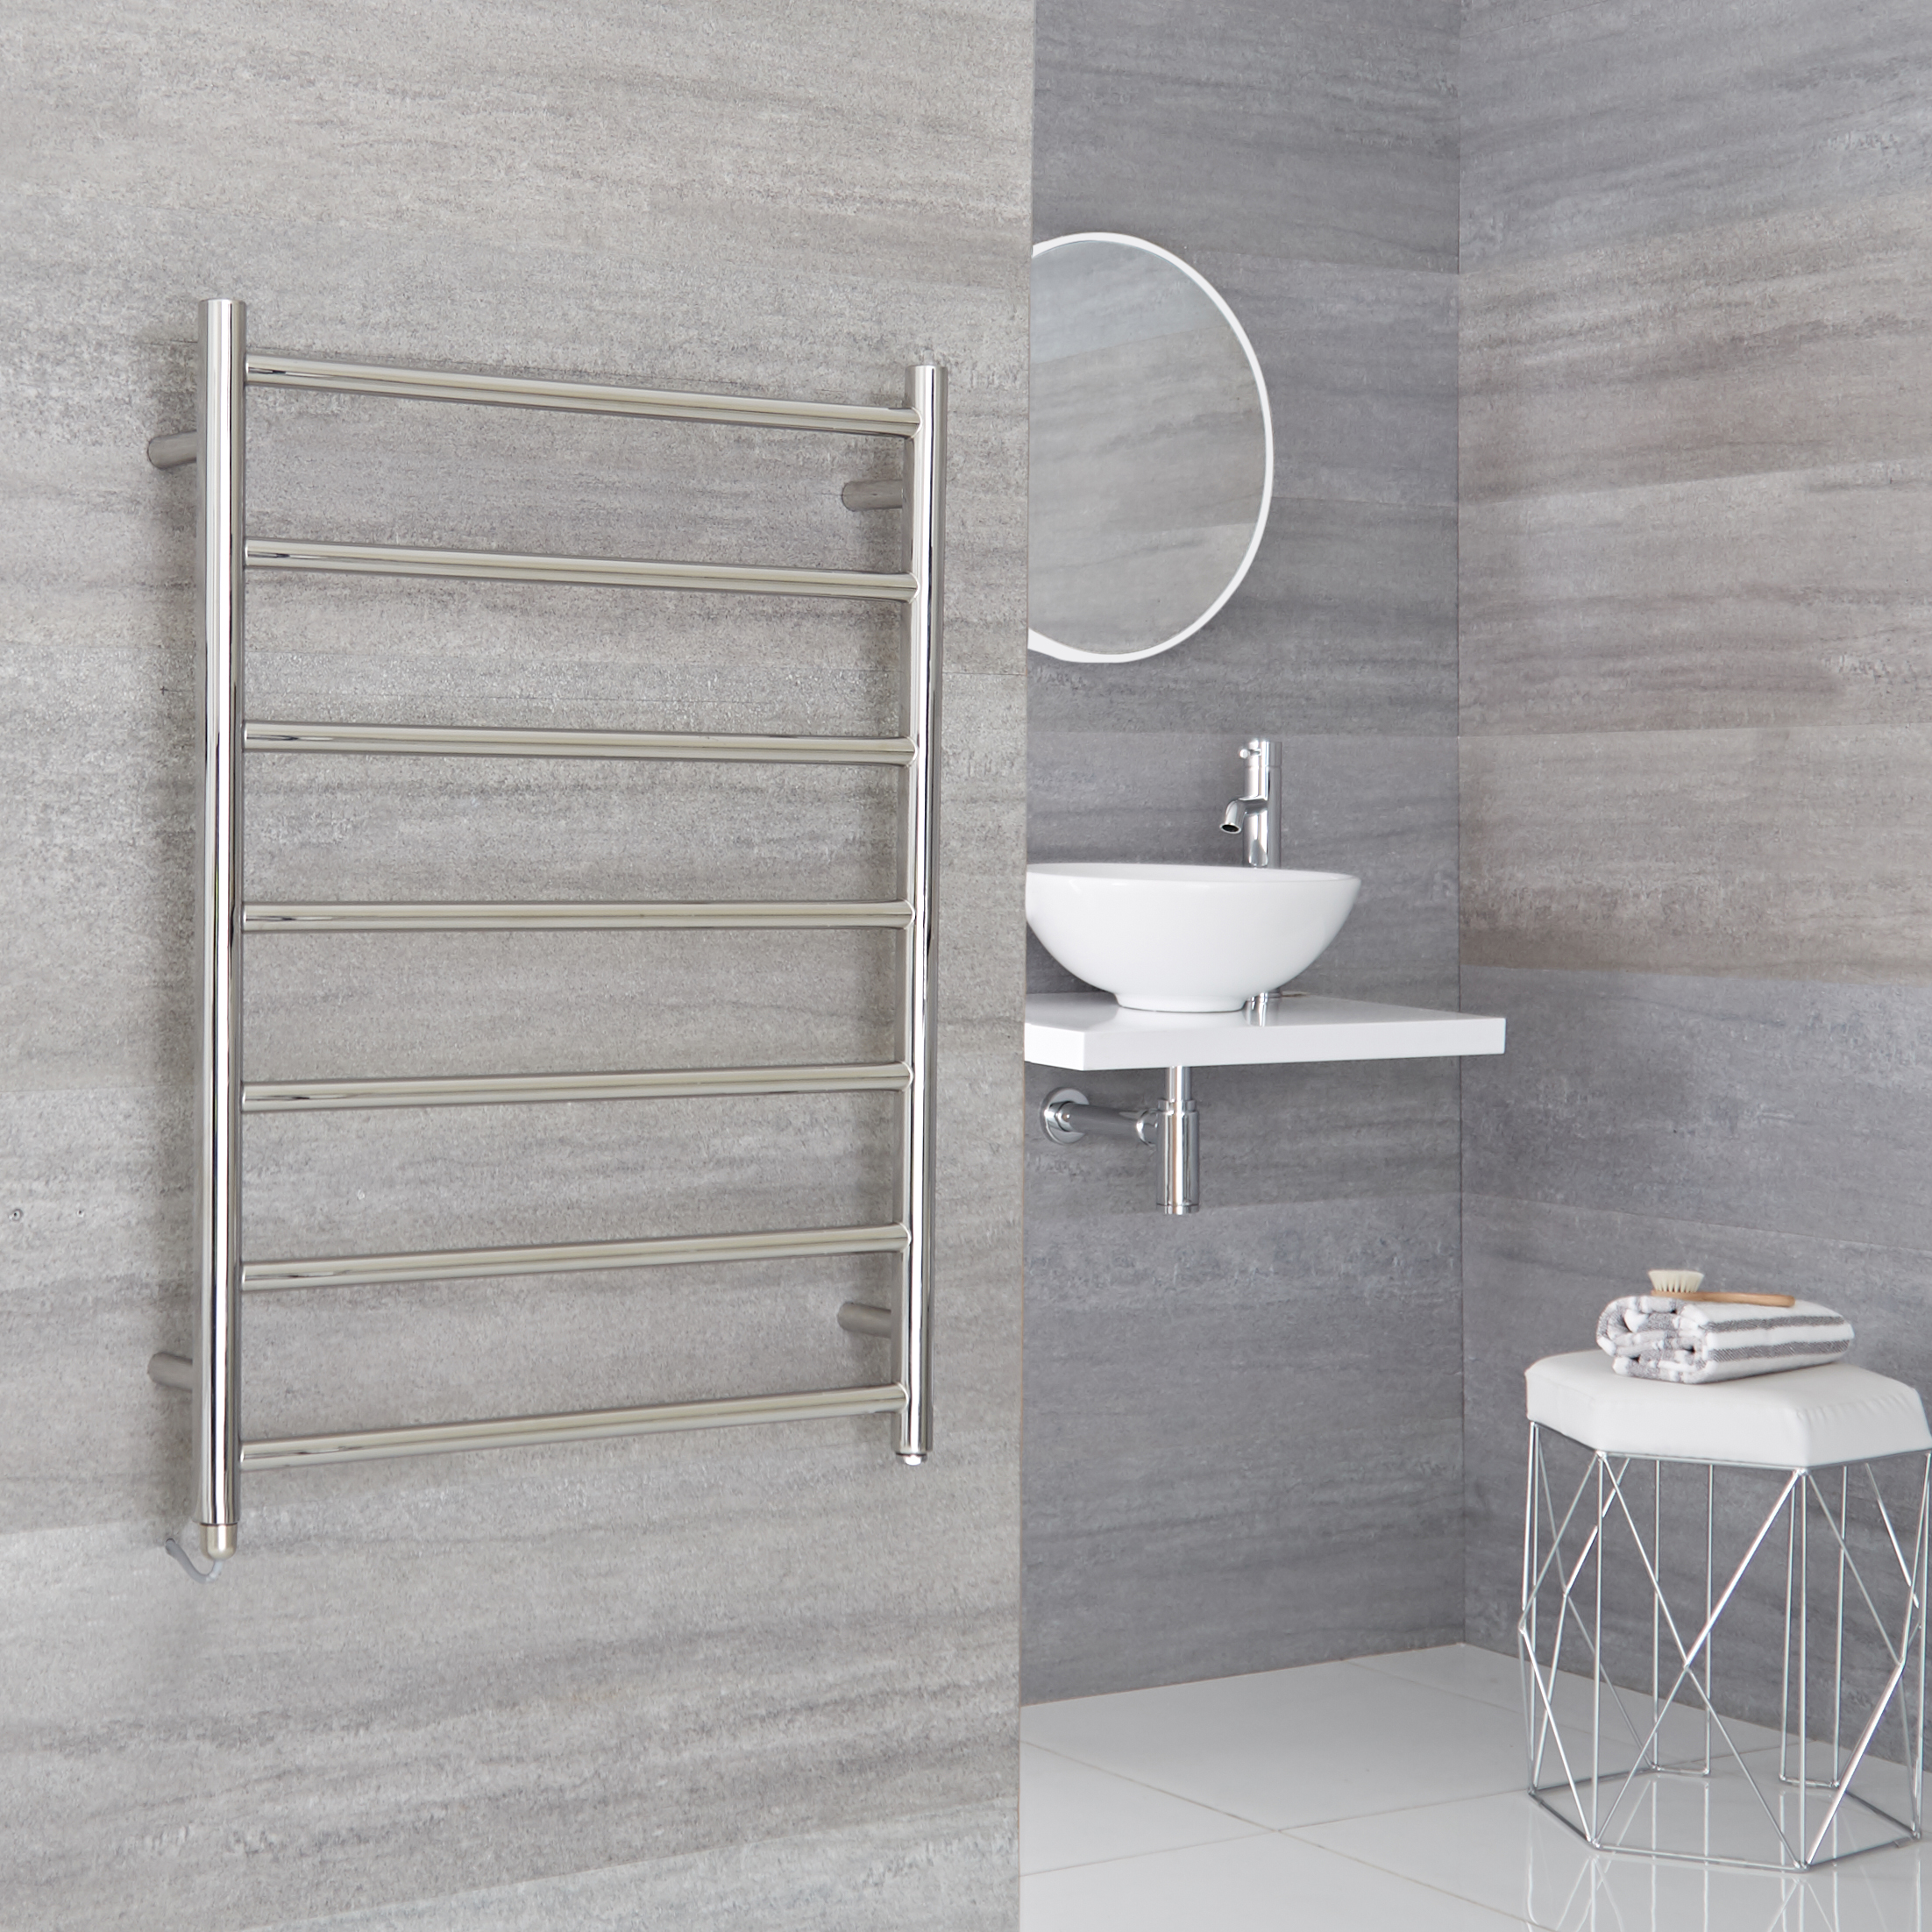 Milano Esk Electric - Stainless Steel Flat Heated Towel Rail - 600mm x 800mm